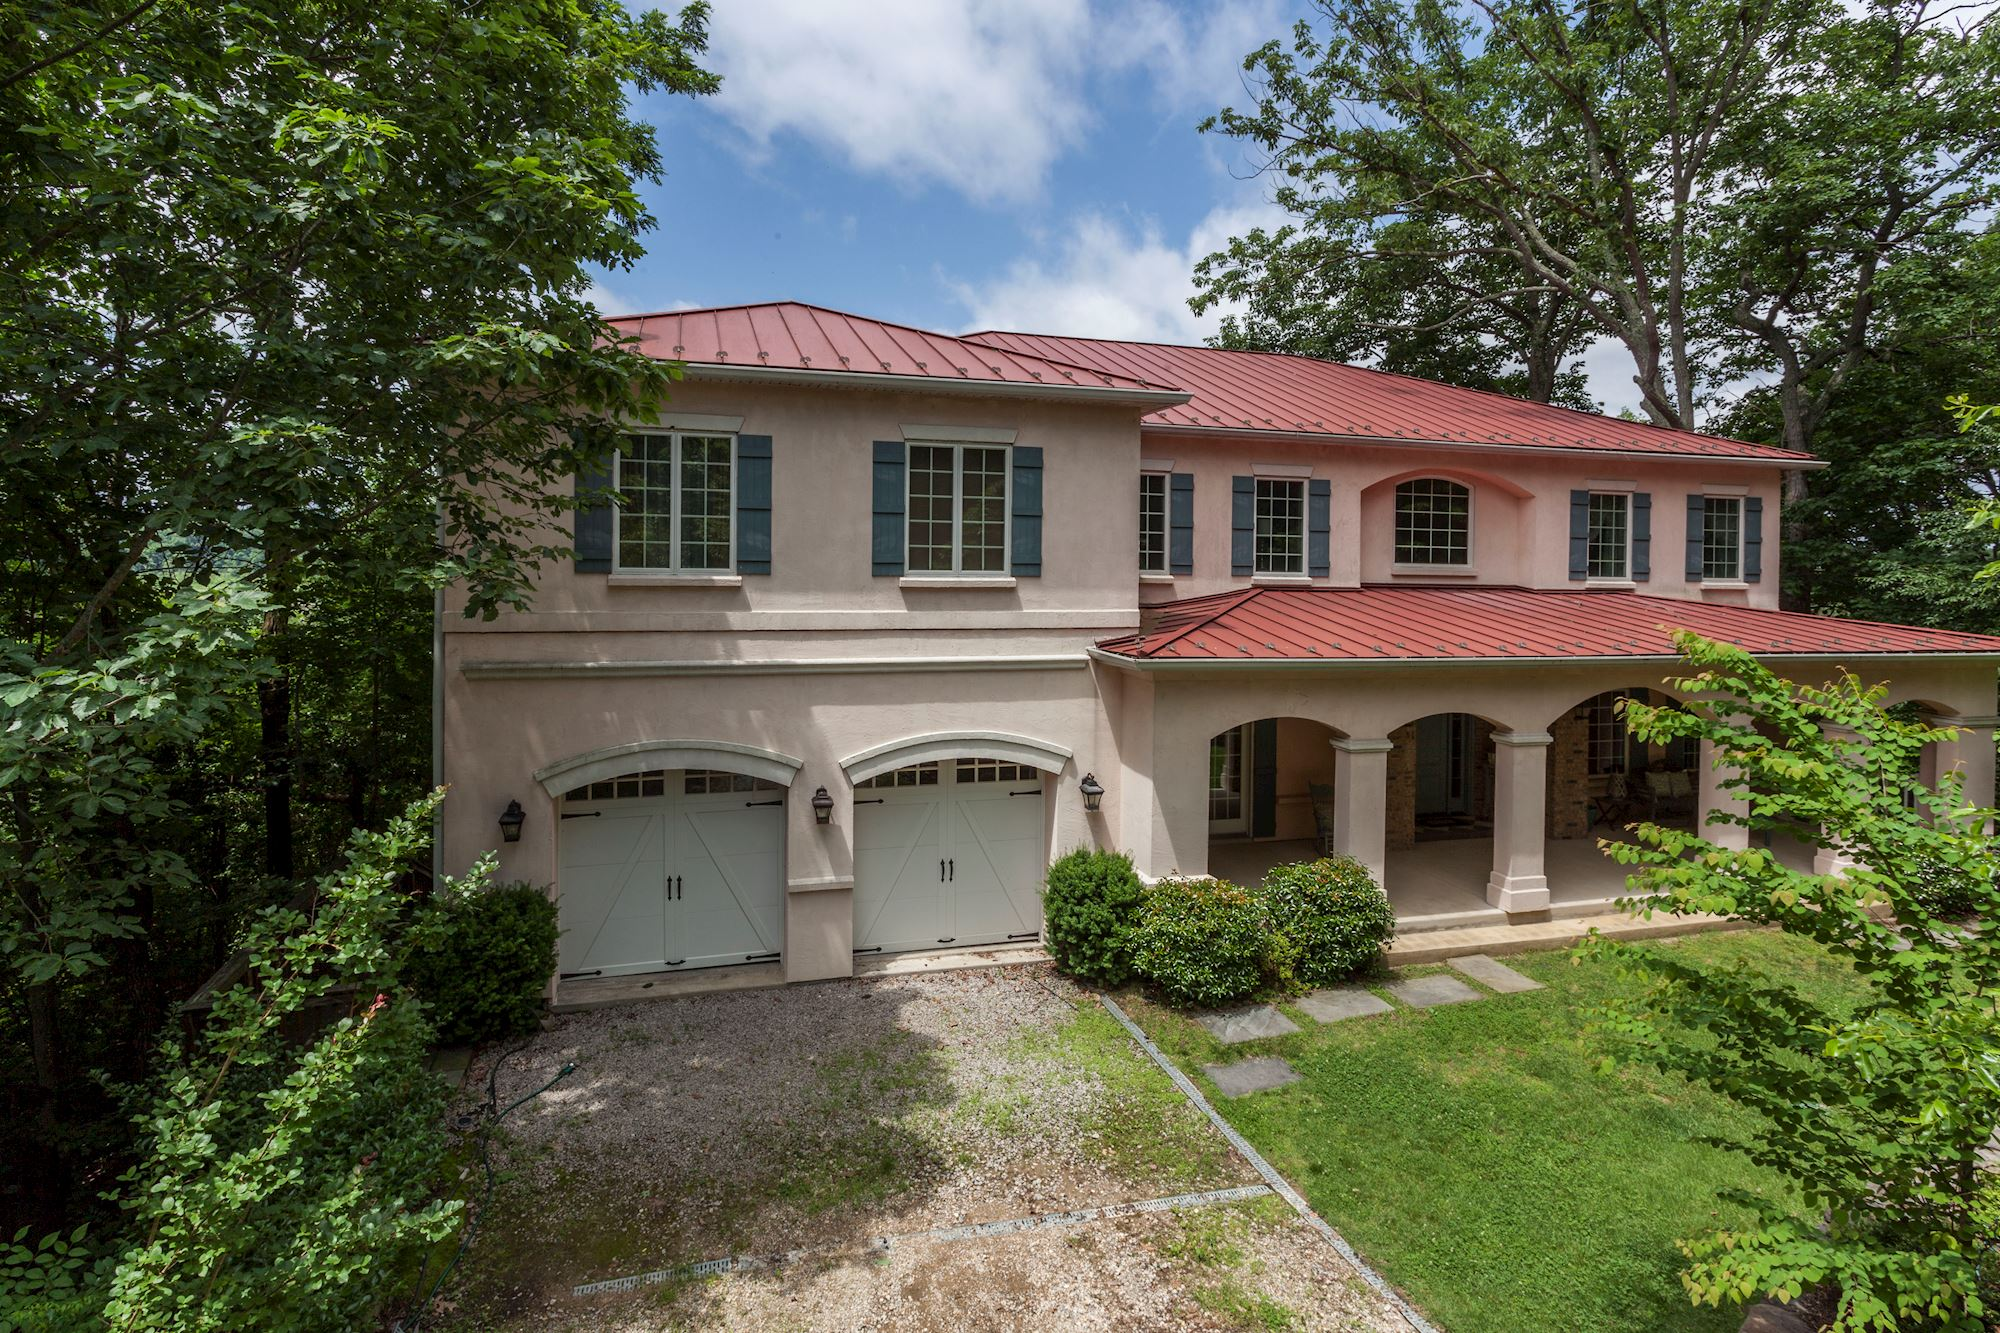 NEW LISTING: 5 BD Exquisite Home in Great Location